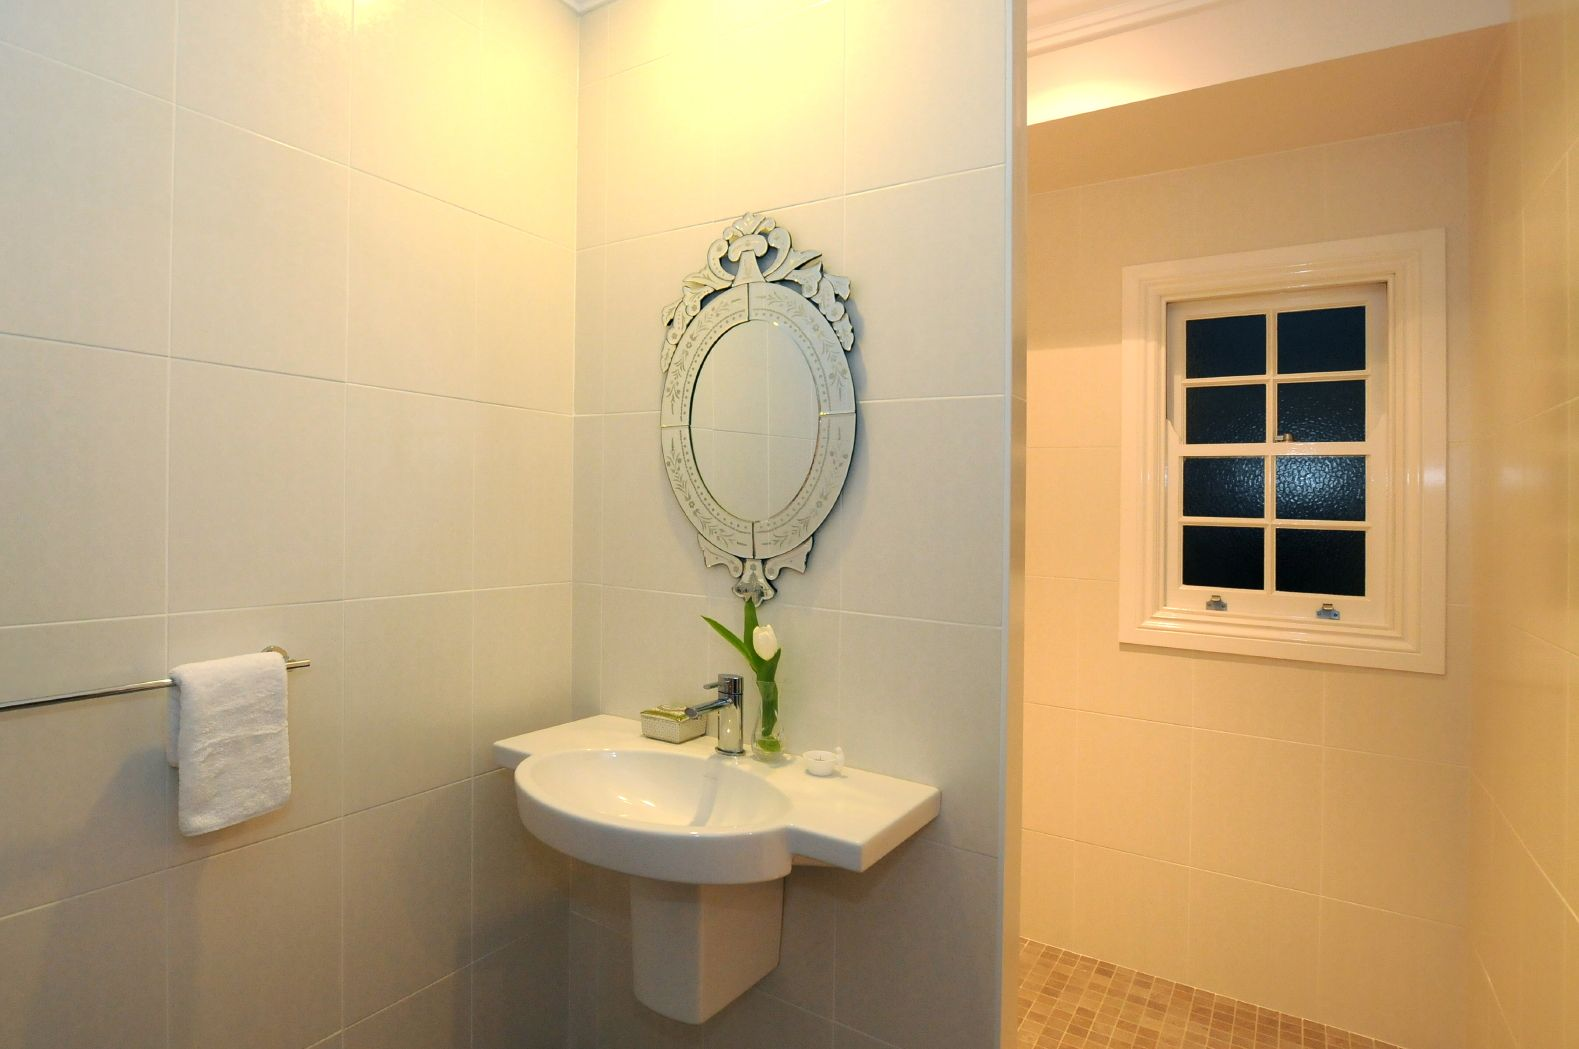 Small sink with ledge | Powder room redo | Pinterest | Small sink ...